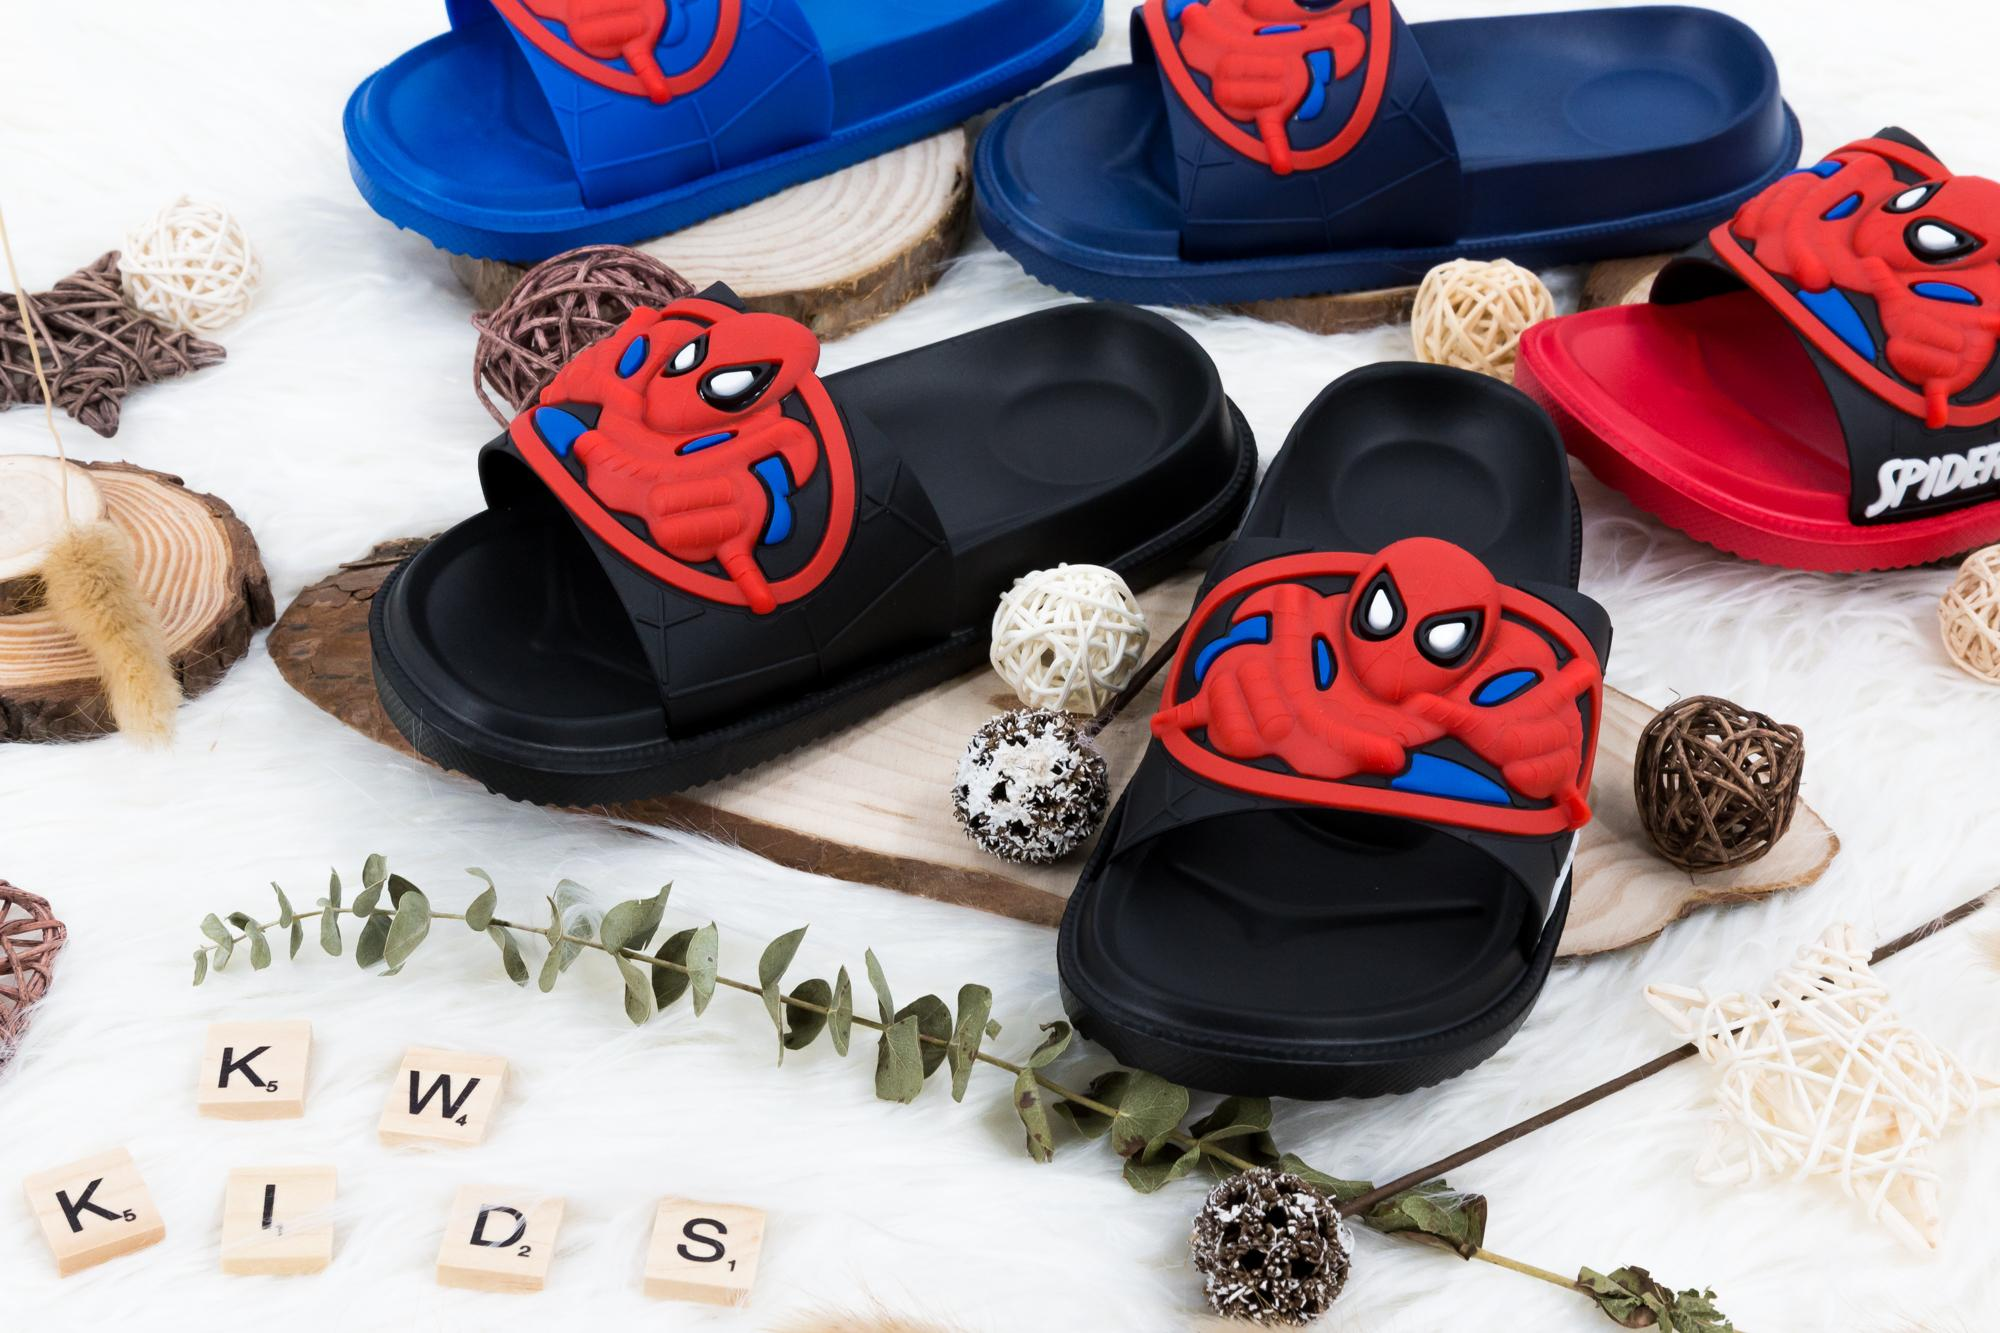 Kwkids High Quality Unisex Cartoon Slides 738s By Kwkids.